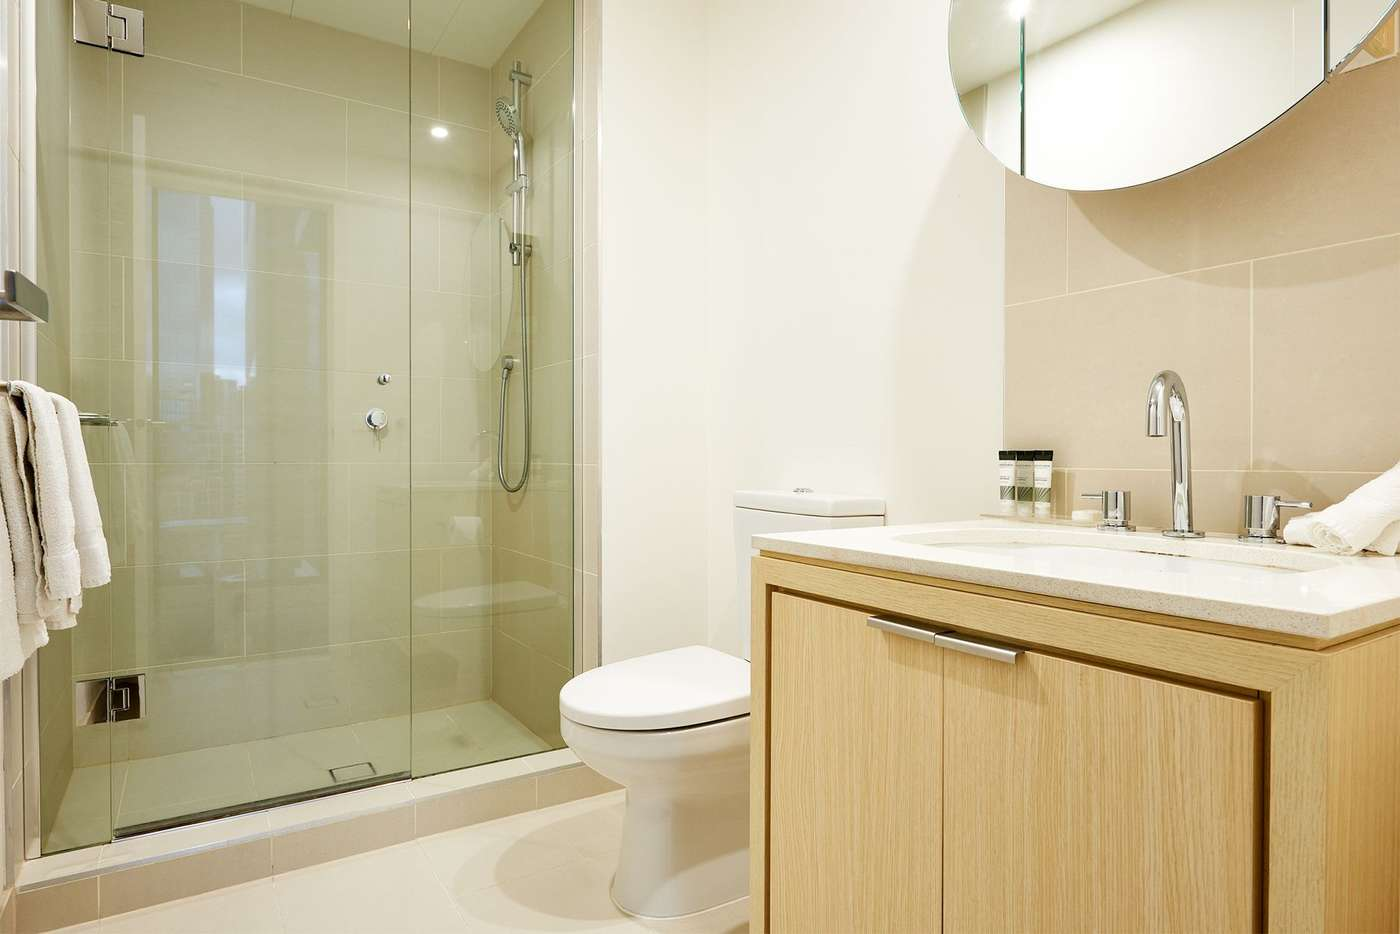 Fifth view of Homely apartment listing, 1504/133 City Road, Southbank VIC 3006